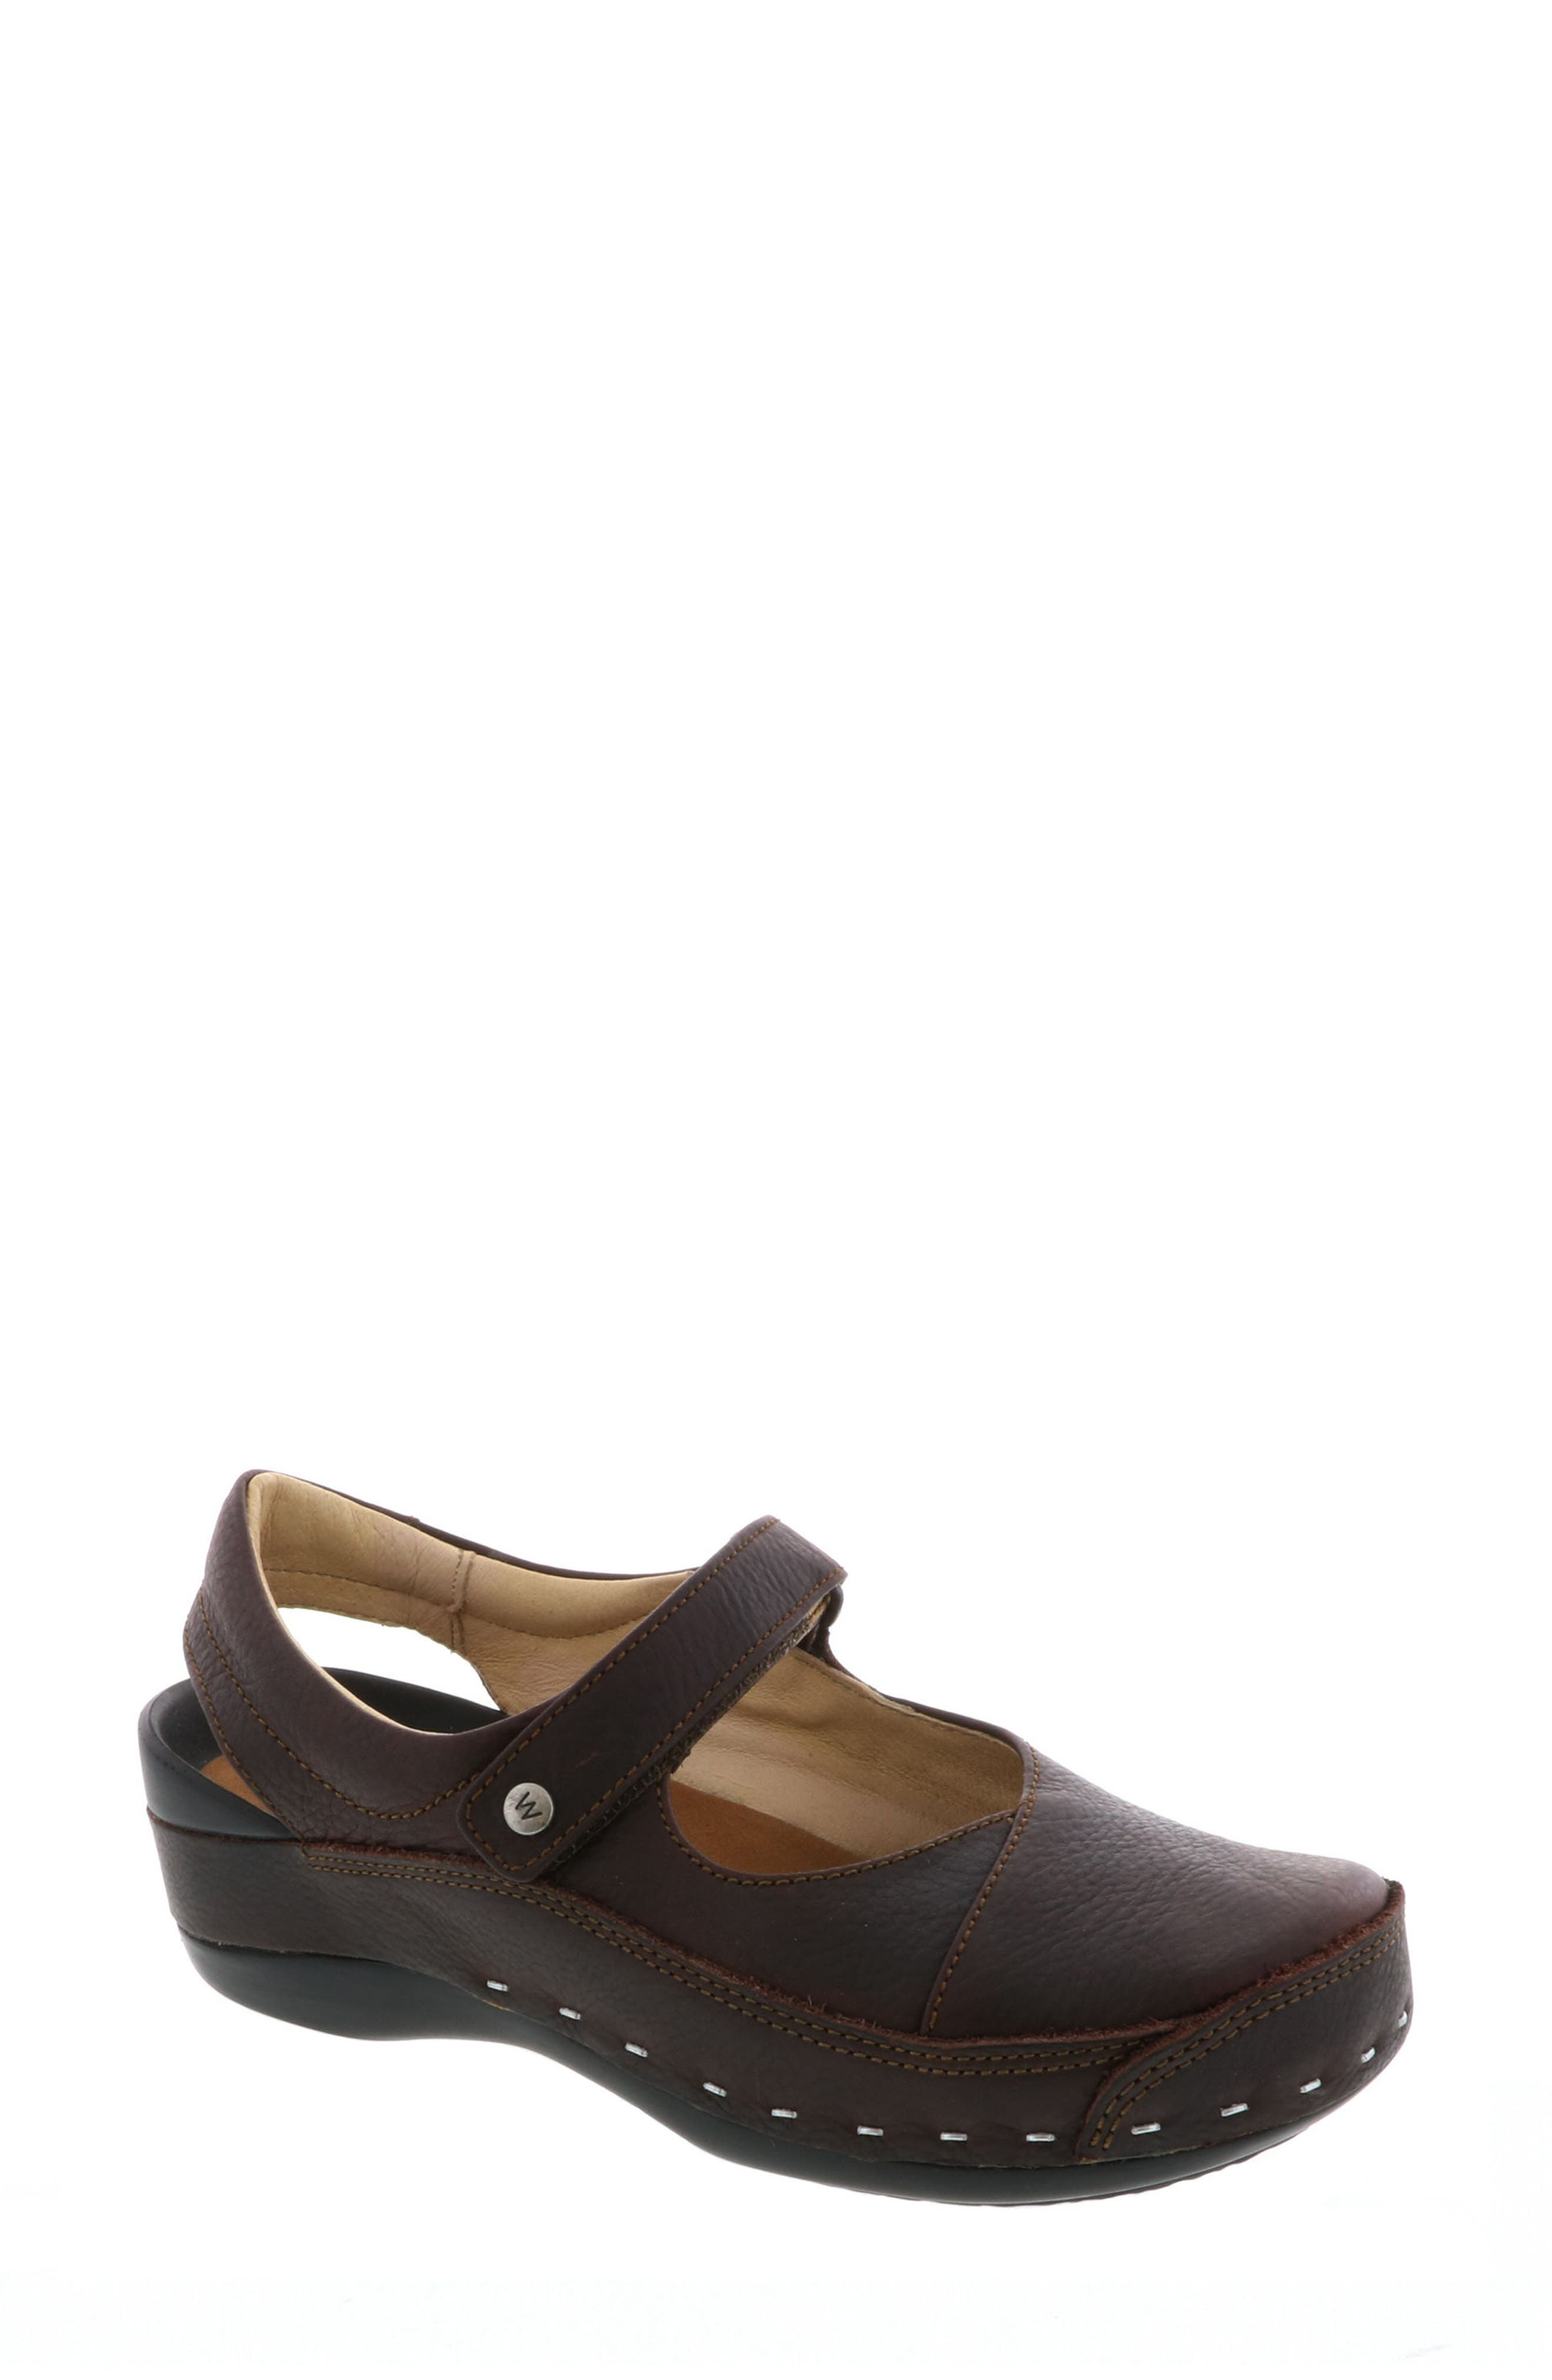 Wolky Ankle Strap Clog, Brown